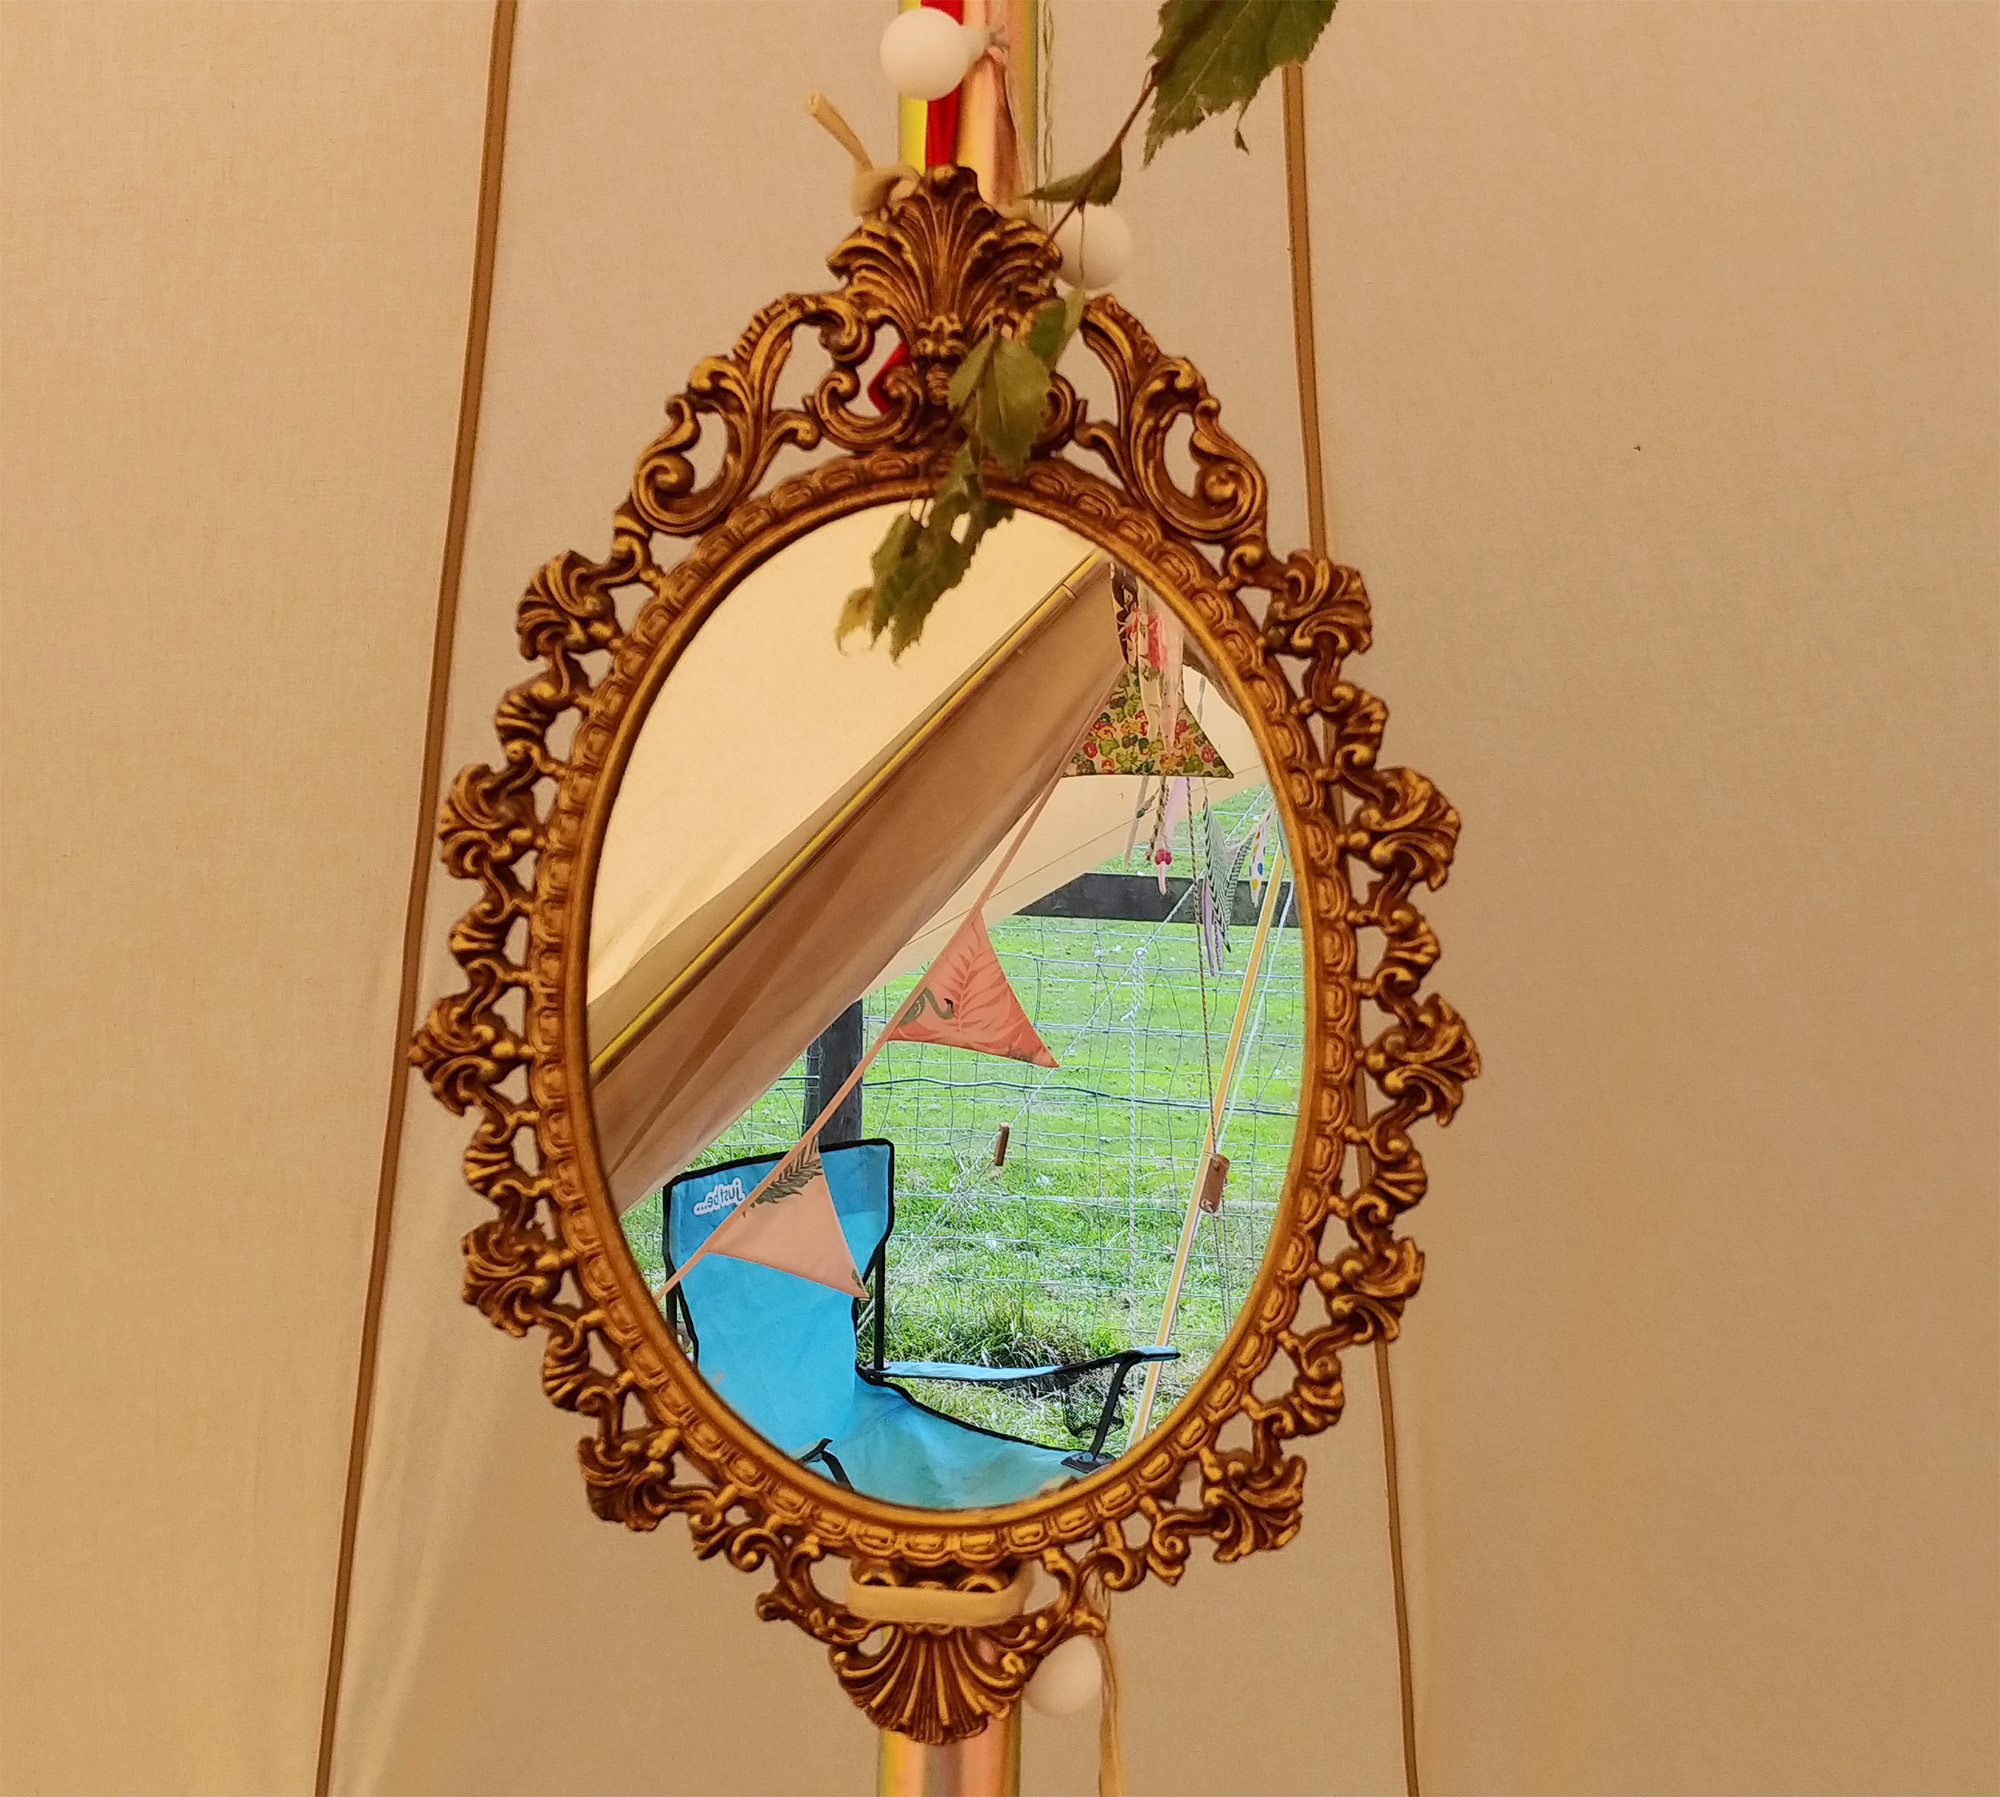 Suspending a mirror from the centre pole is genuinely practical for getting ready in the morning. If it happens to be gilt and antique style, all the better :-)